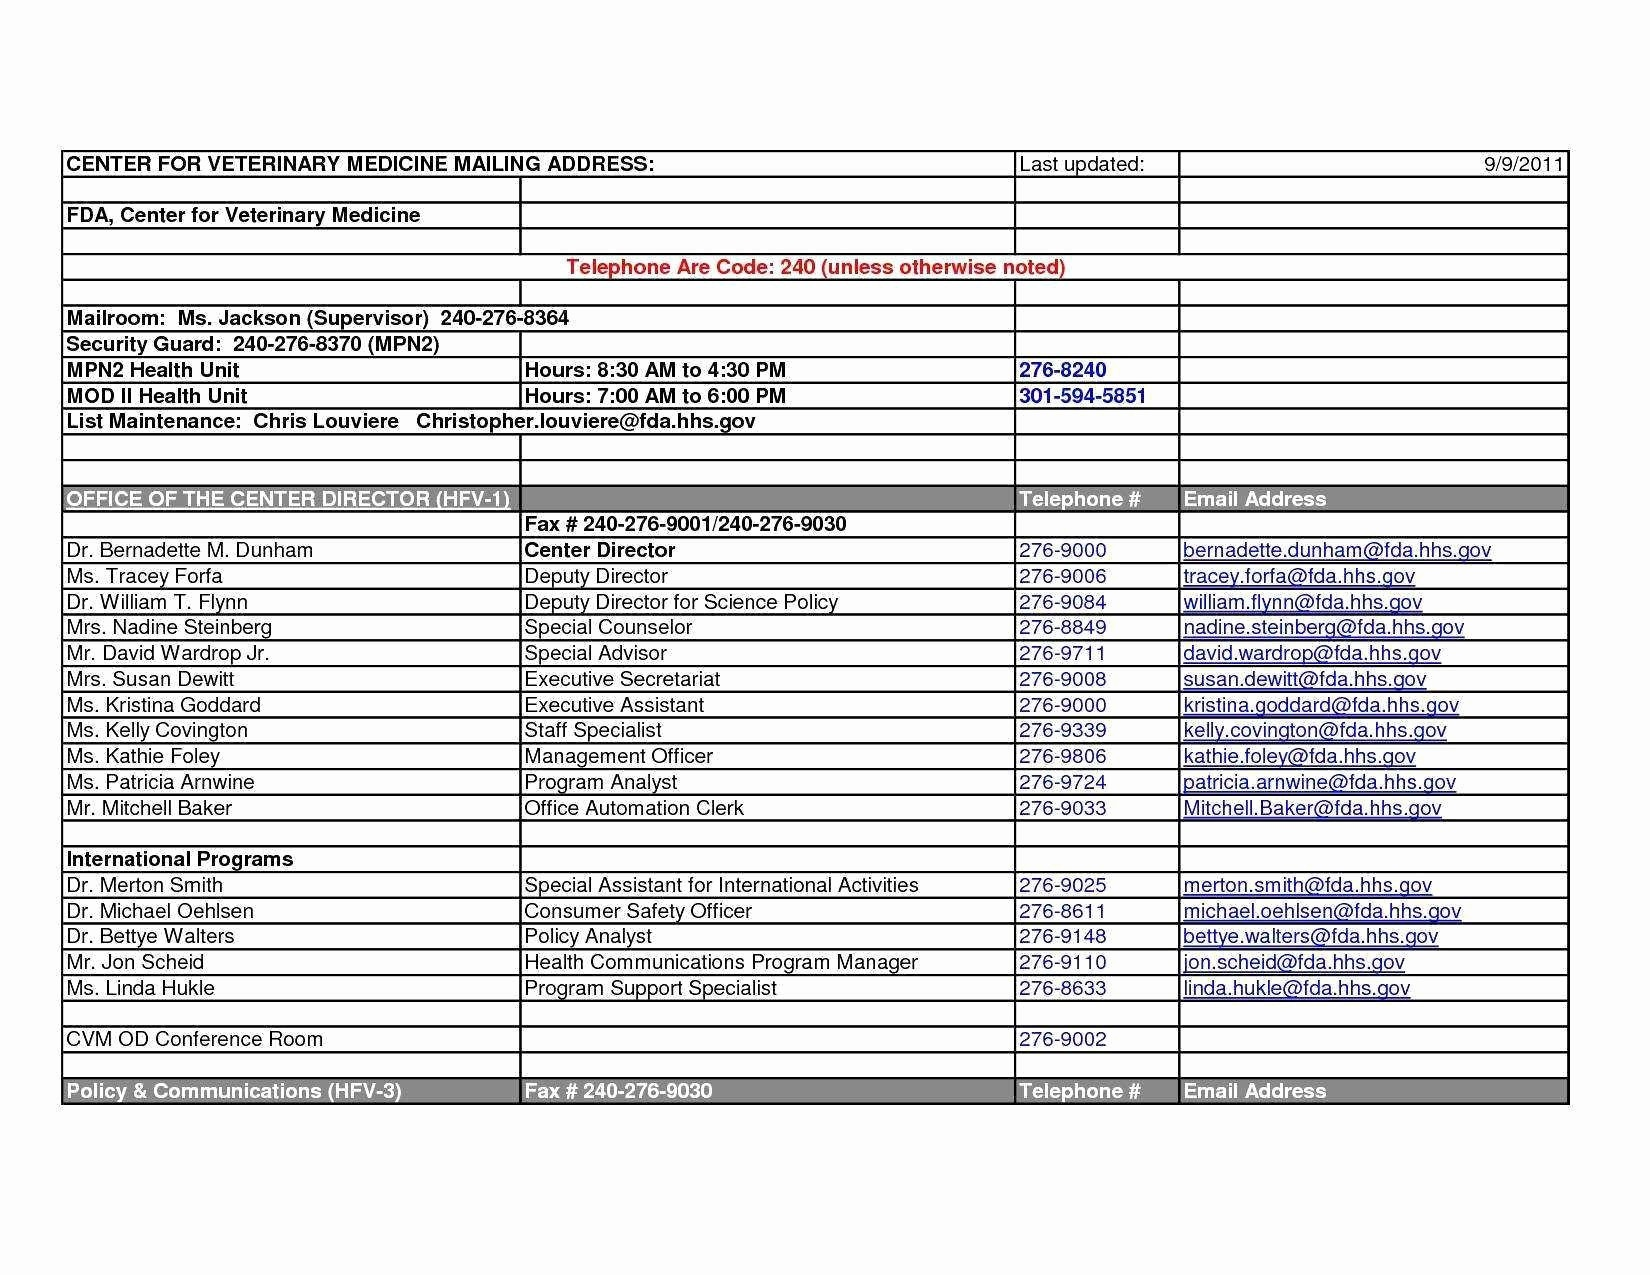 Free Financial Statement Software And Free Bid Sheet Template - Free Printable Silent Auction Templates